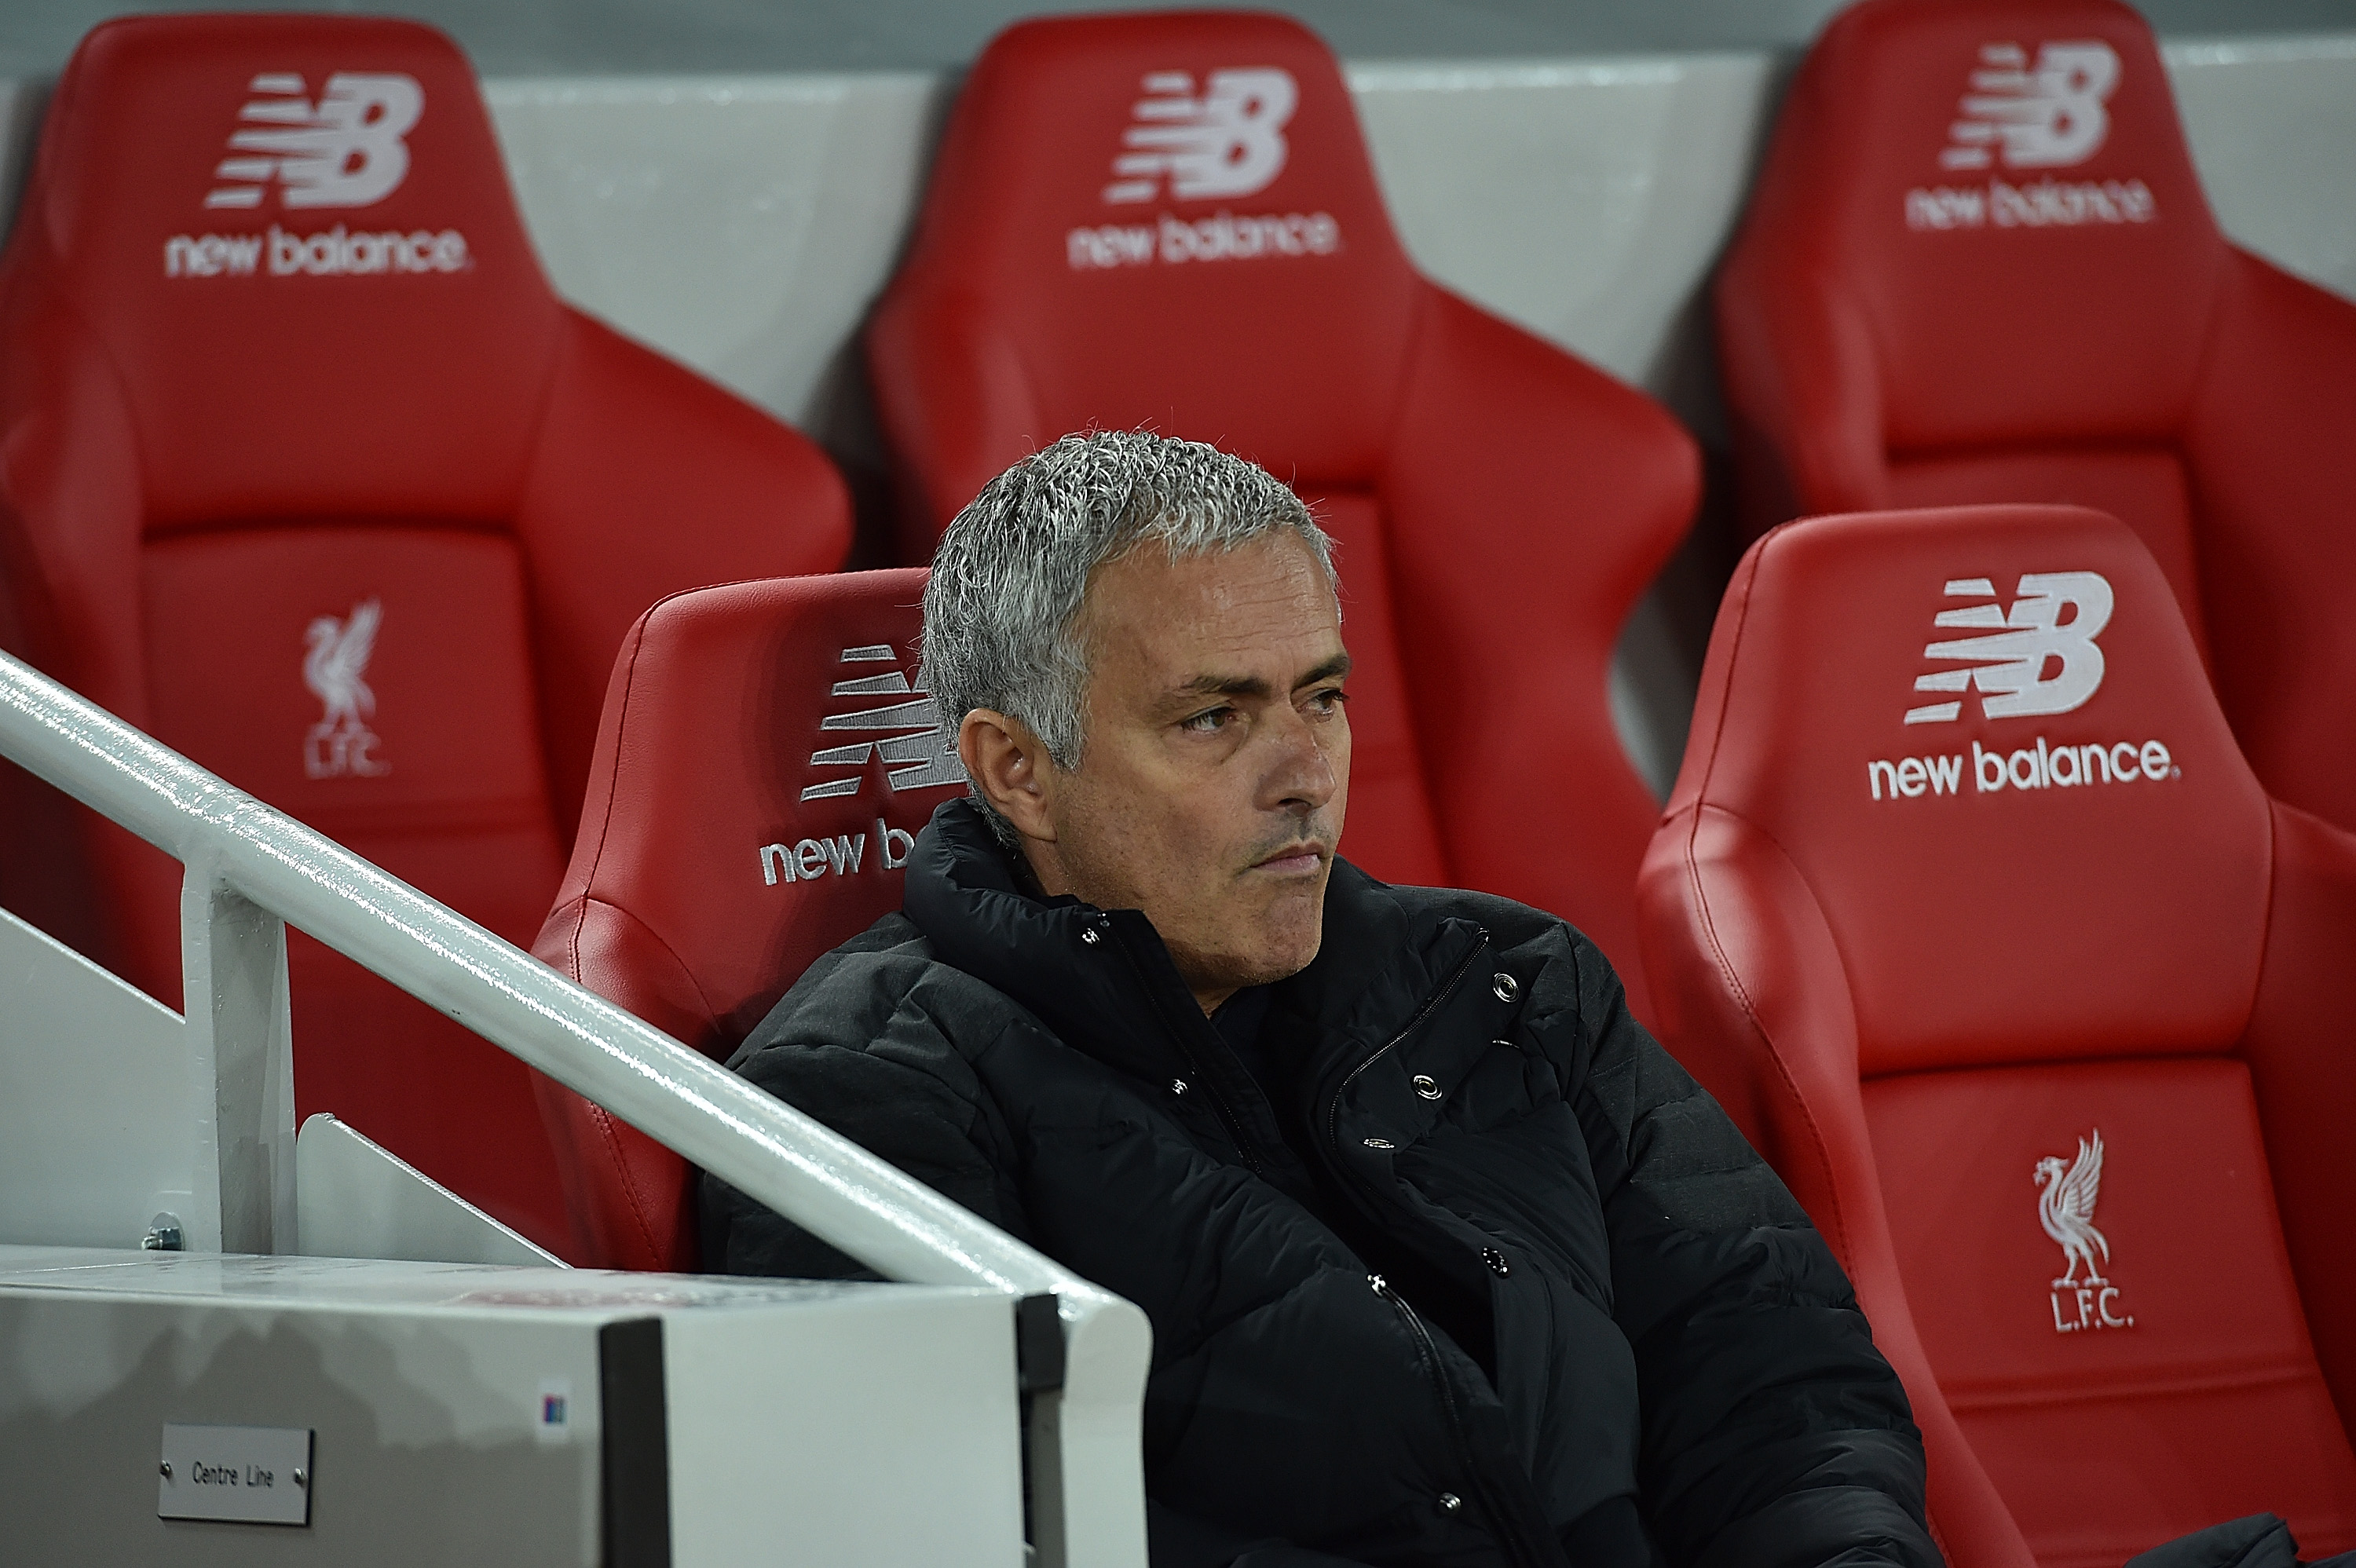 Jose Mourinho is off to just as bad a start at Manchester United as David Moyes